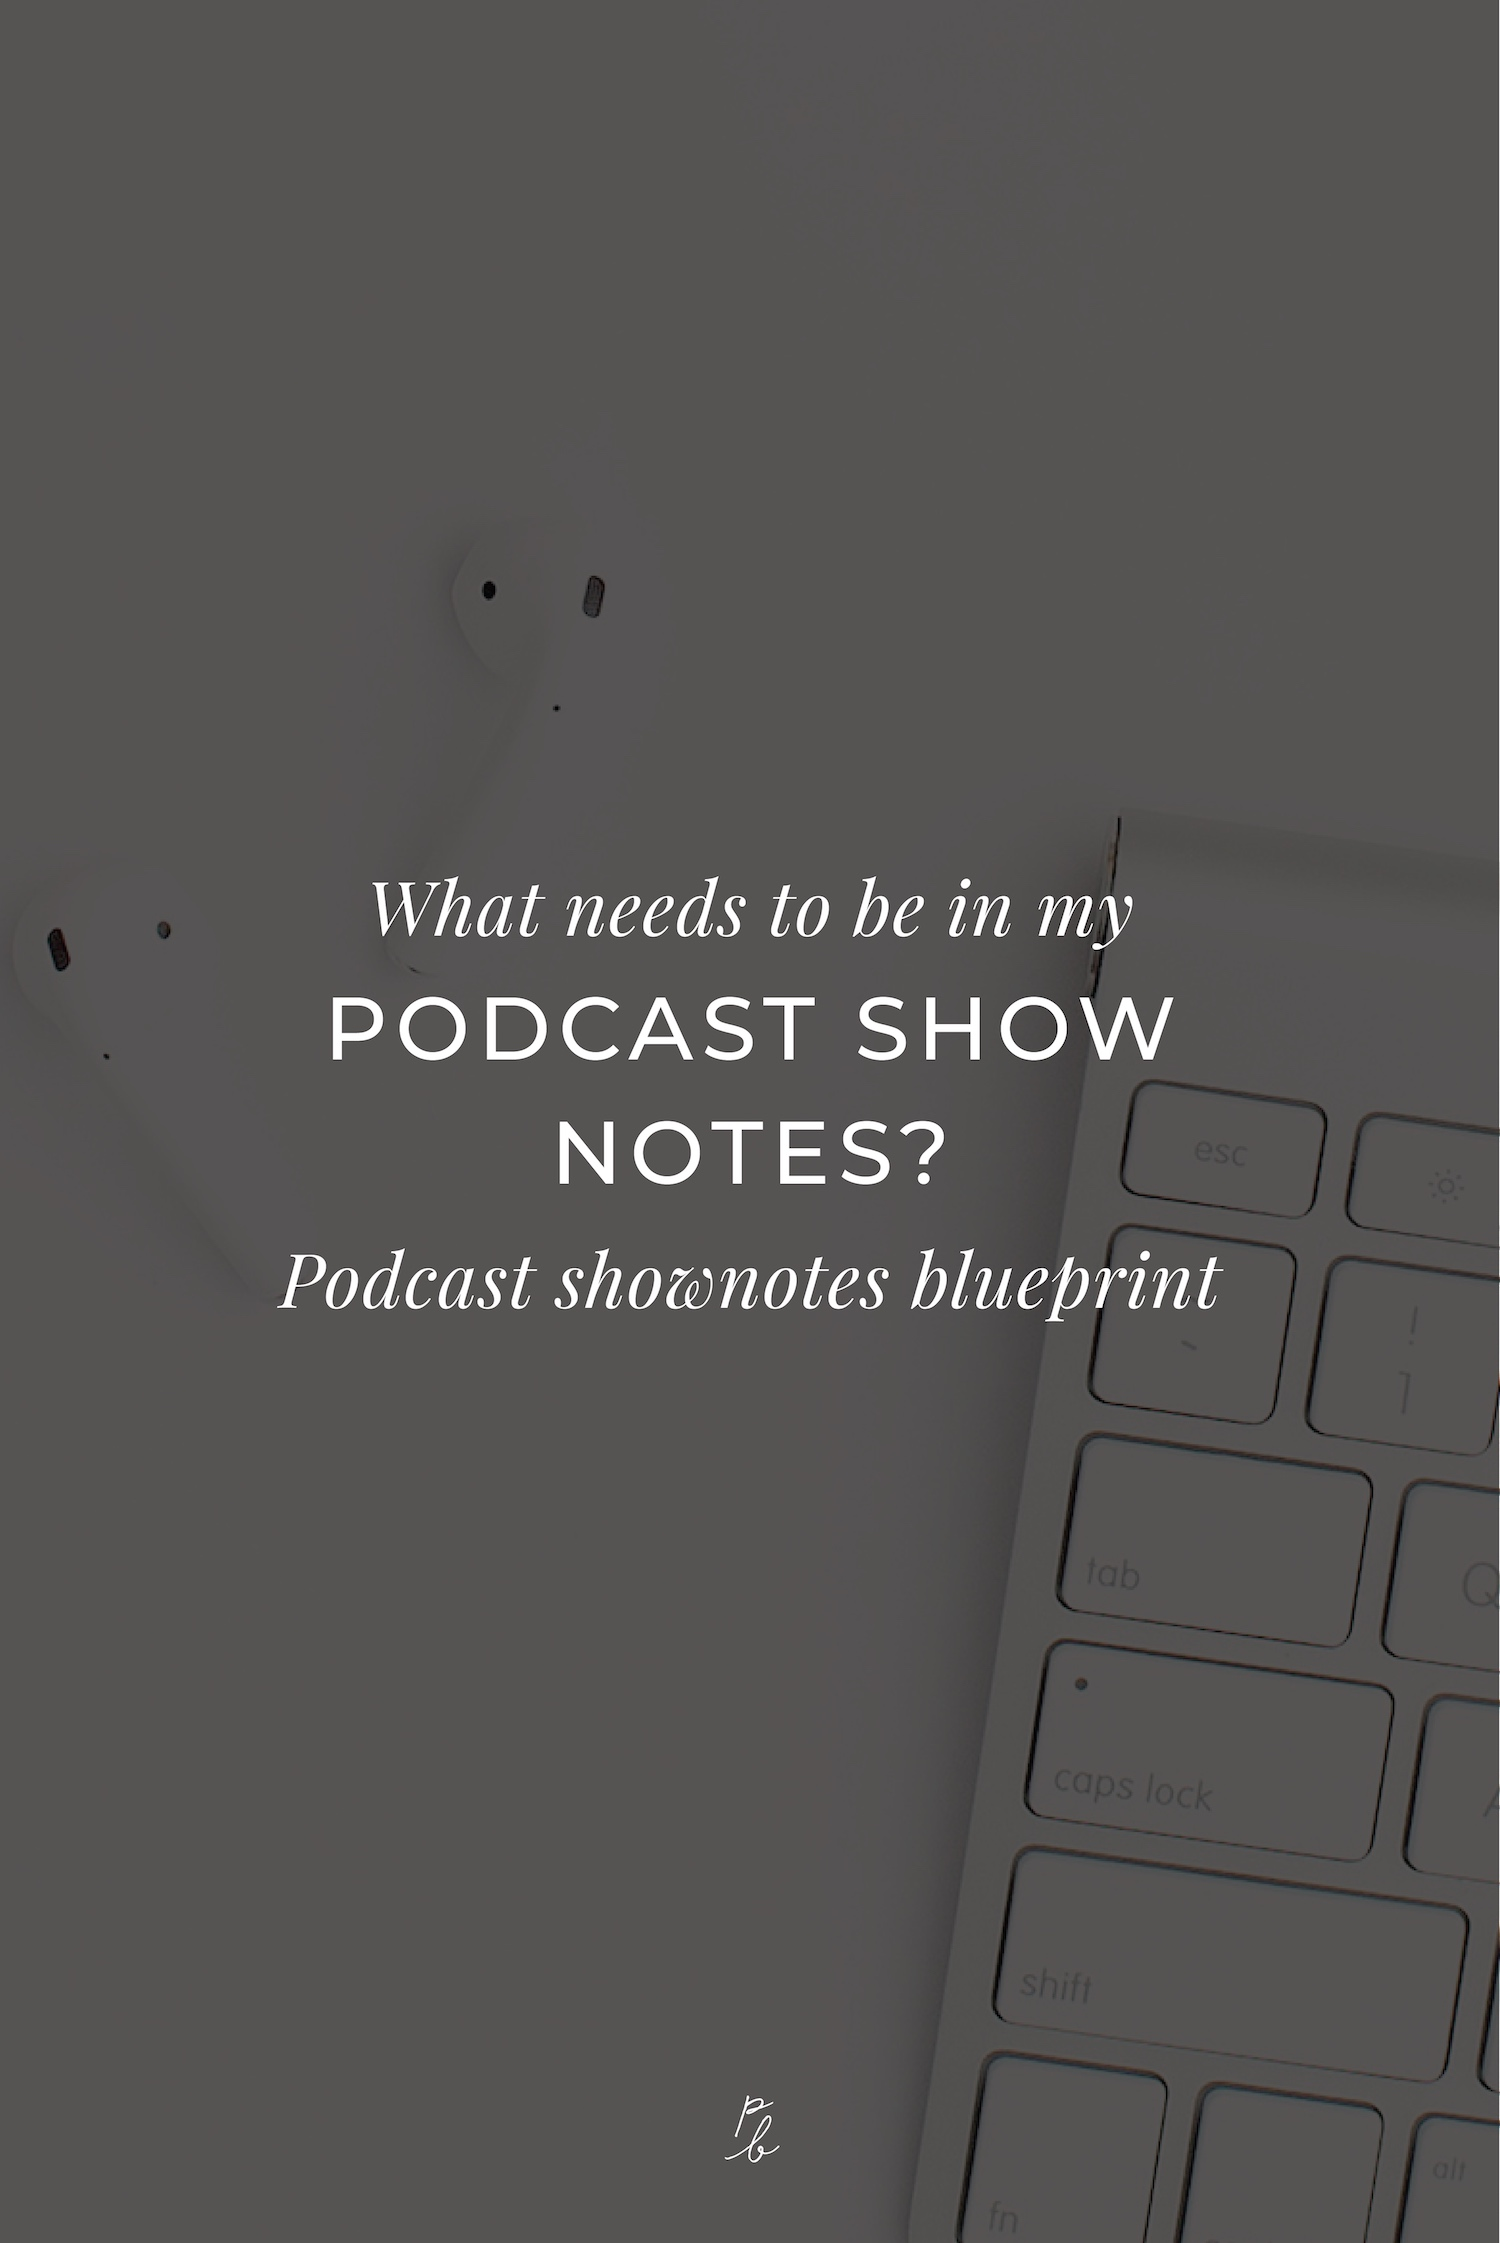 What needs to be in my podcasts show notes? Podcast show notes blueprint-02.jpeg